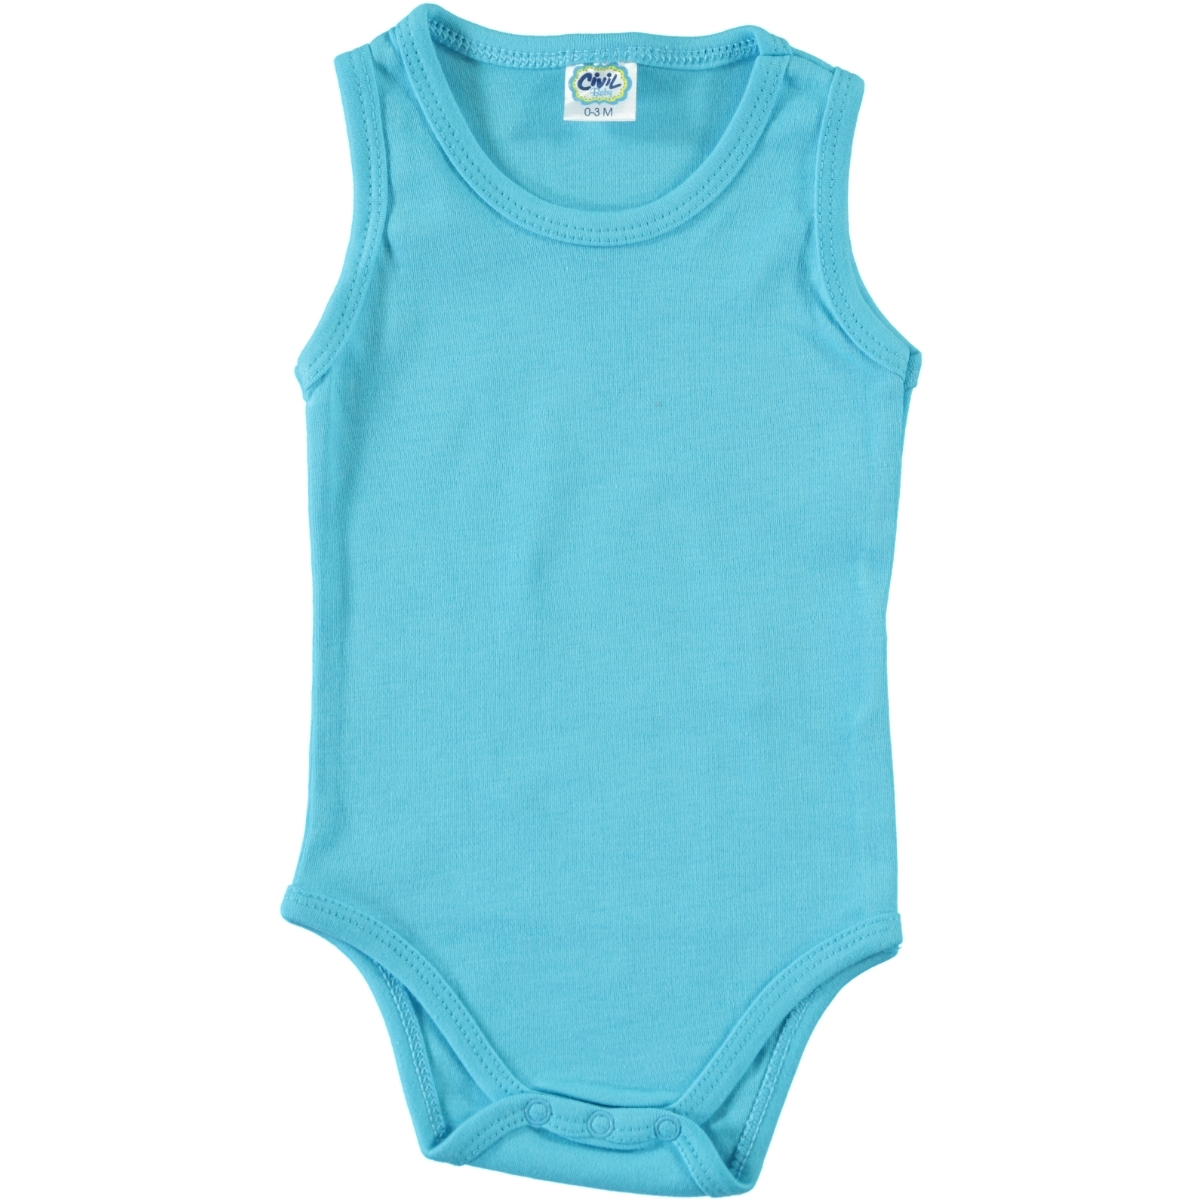 Civil Baby Turquoise Baby Bodysuit With Snaps 3-24 Months